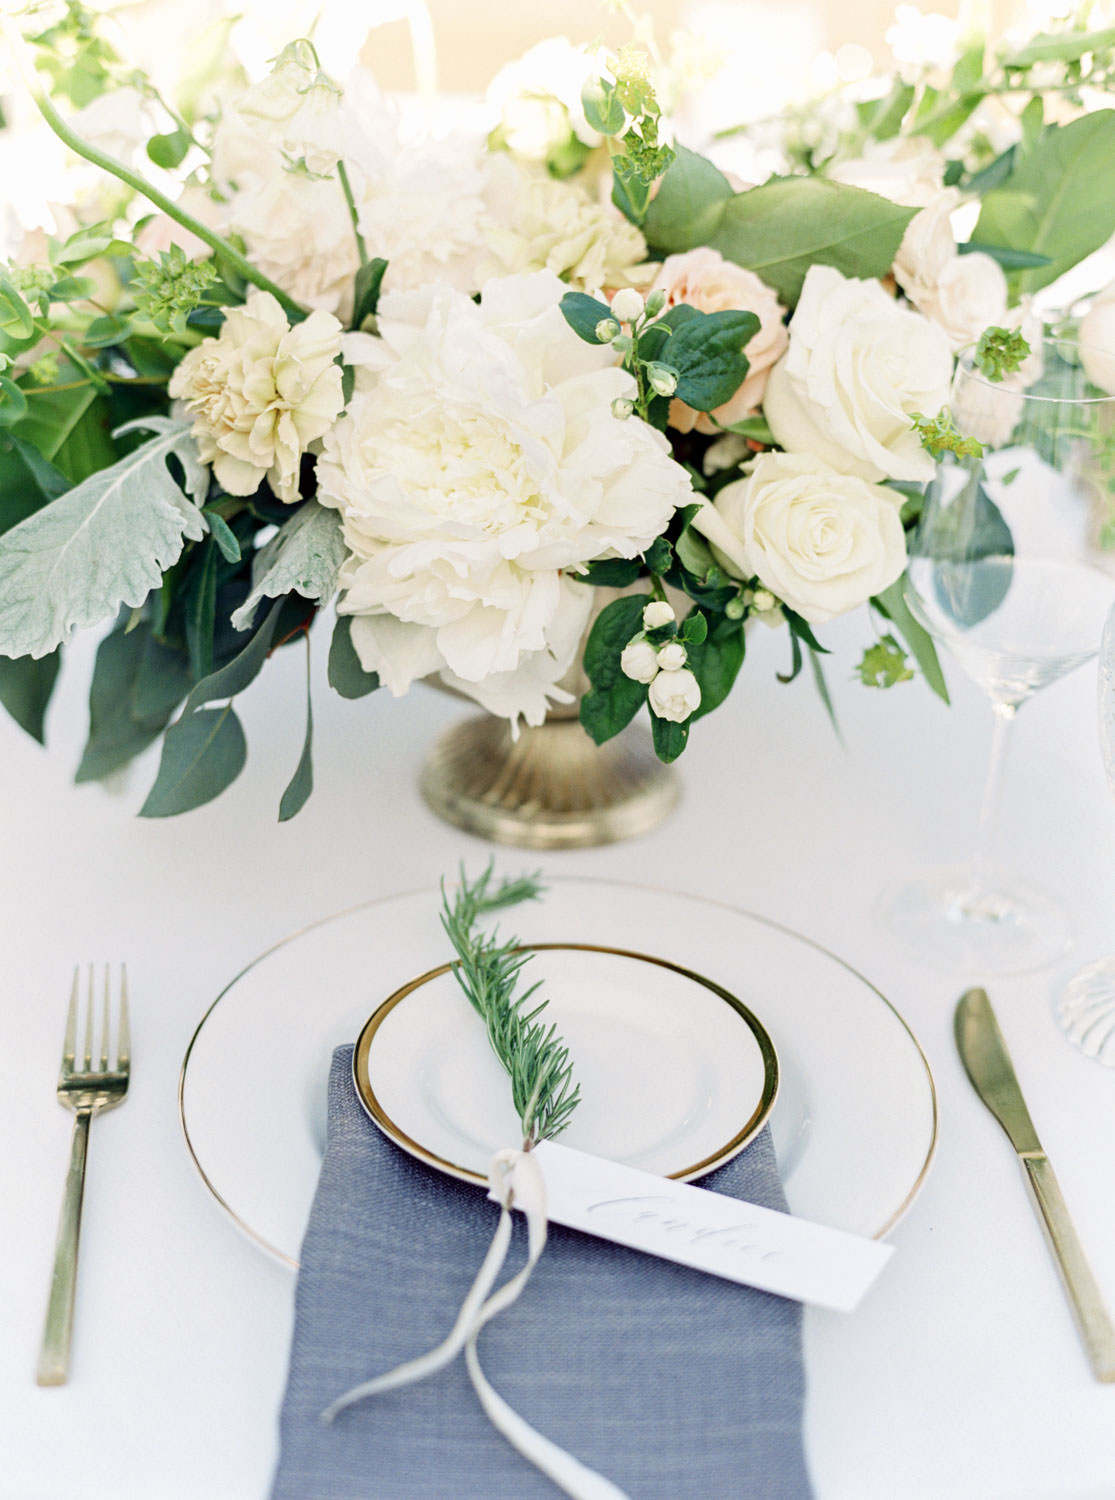 Santa Ynez Gainey Vineyards wedding reception with white linen grey napkins gold votives and white and green floral arrangements, Cavin Elizabeth Photography